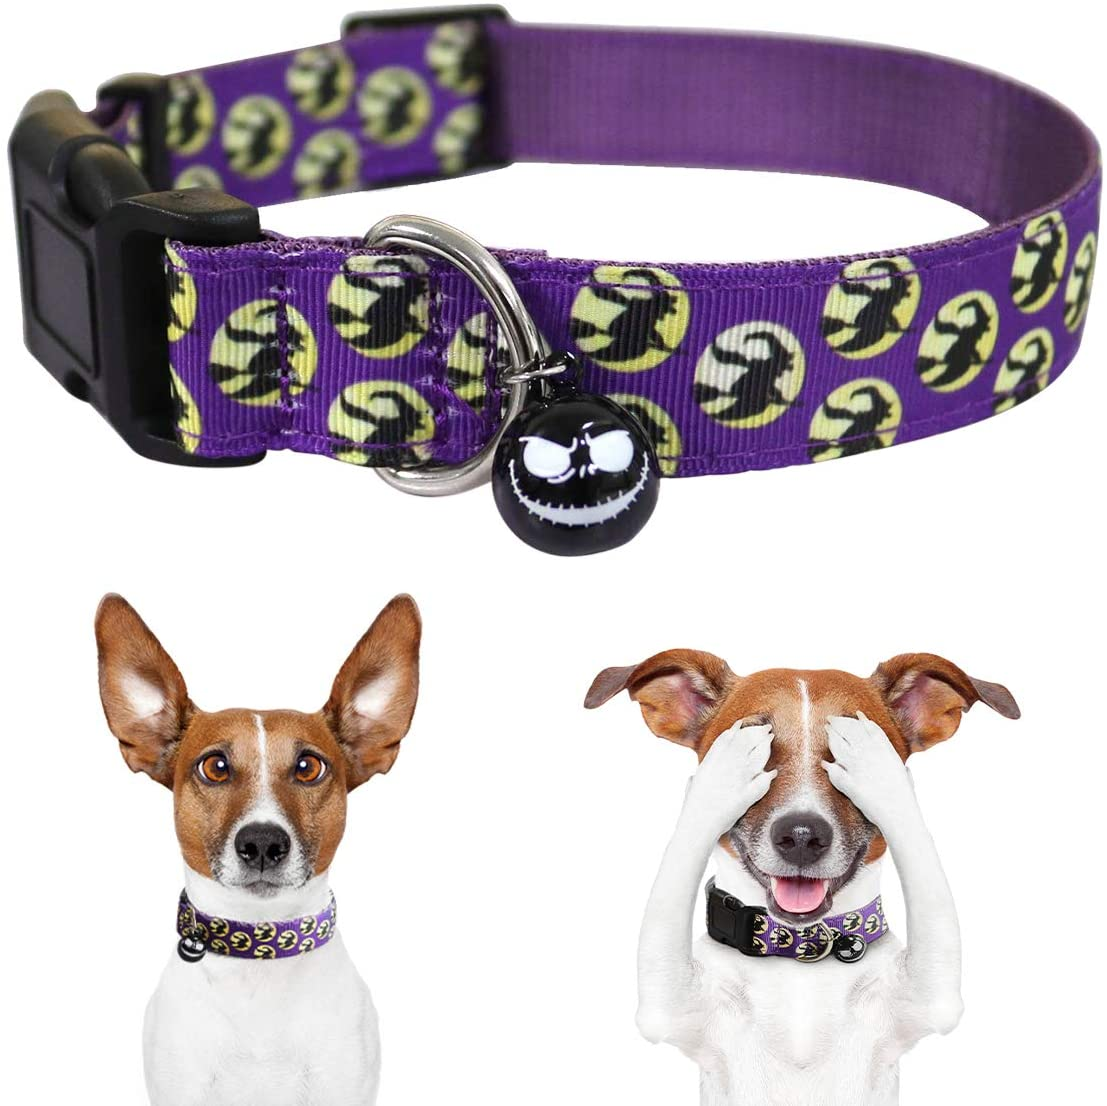 PEDOMUS Pet Christmas Cat Dog Collar with Bow Tie for Adjustable 100% Cotton Nylon Red for Dogs Cats Size XS/S/M/L